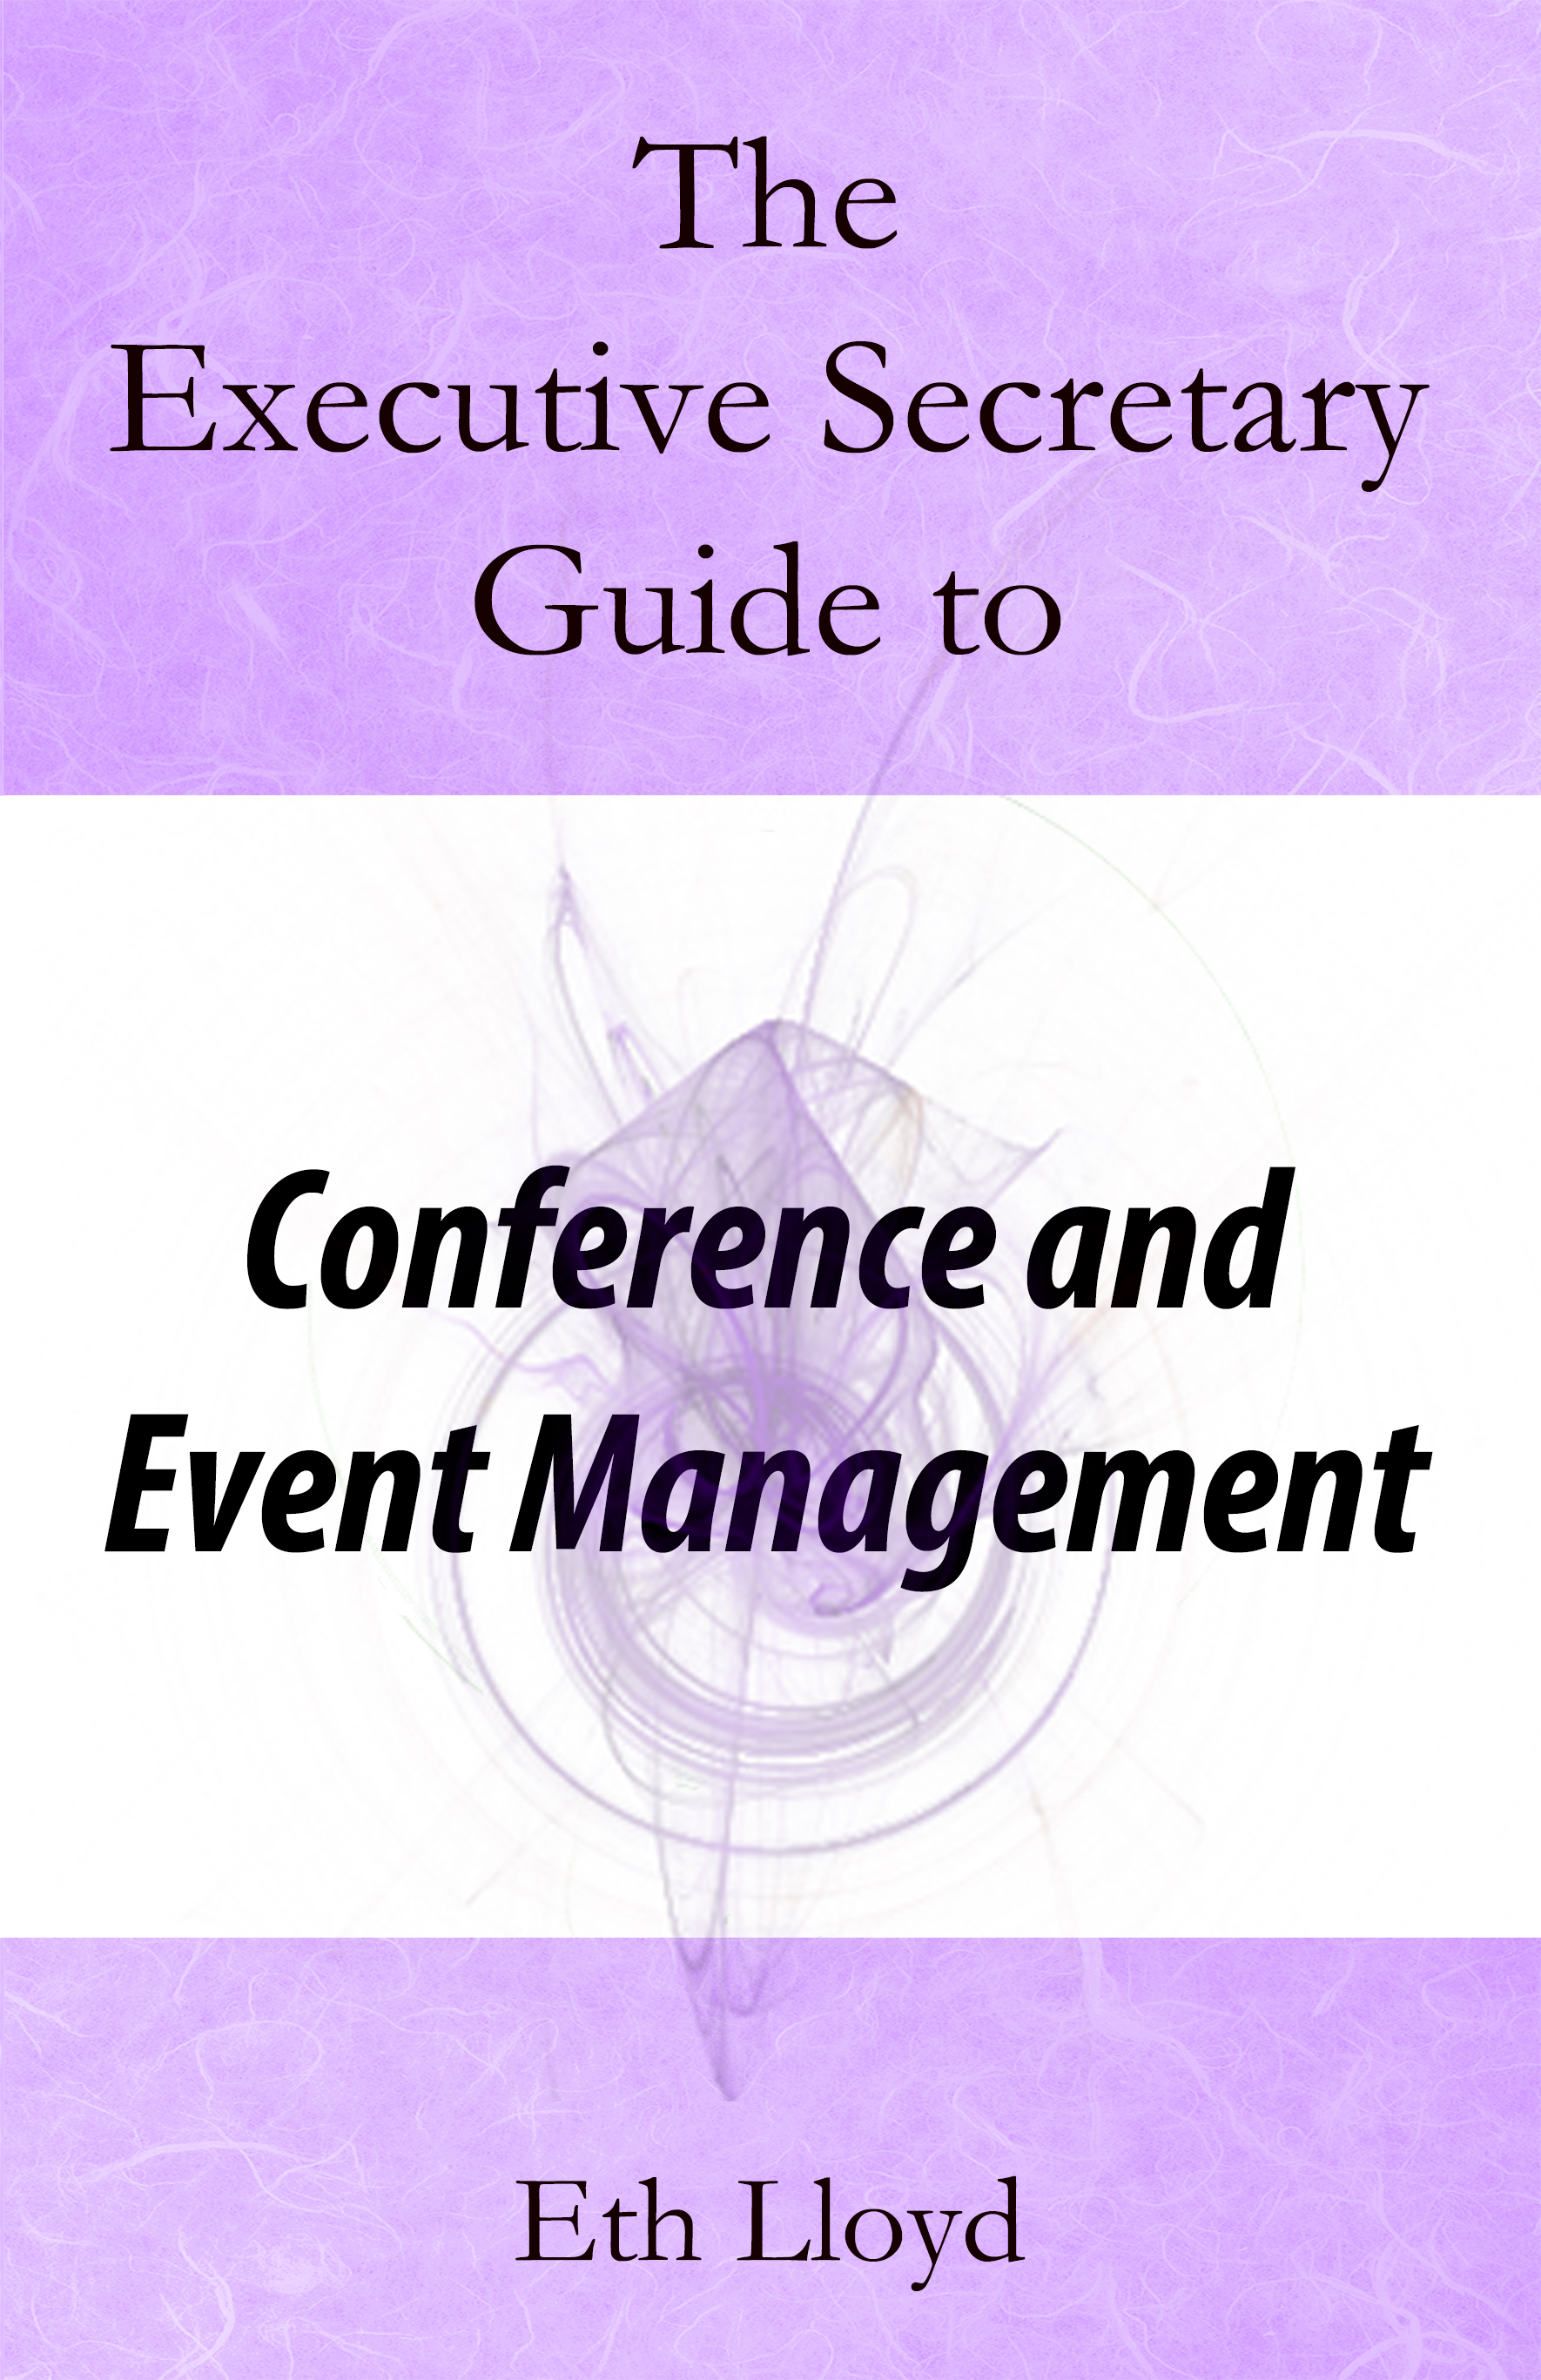 The Executive Secretary Guide to Conference and Event Management